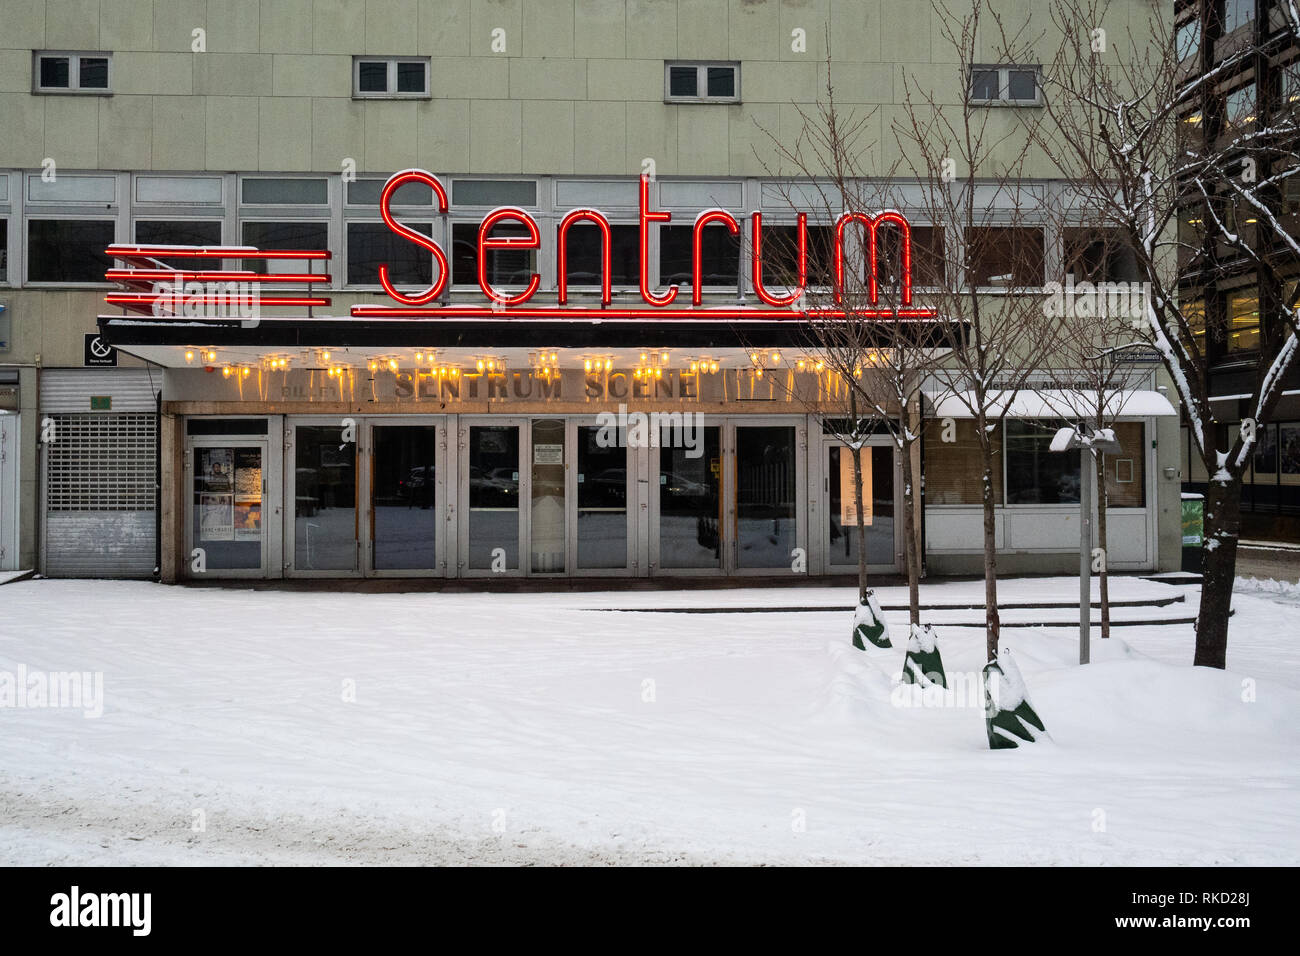 Outside the old concert venue in Oslo called Sentrum Scene during winter - Stock Image